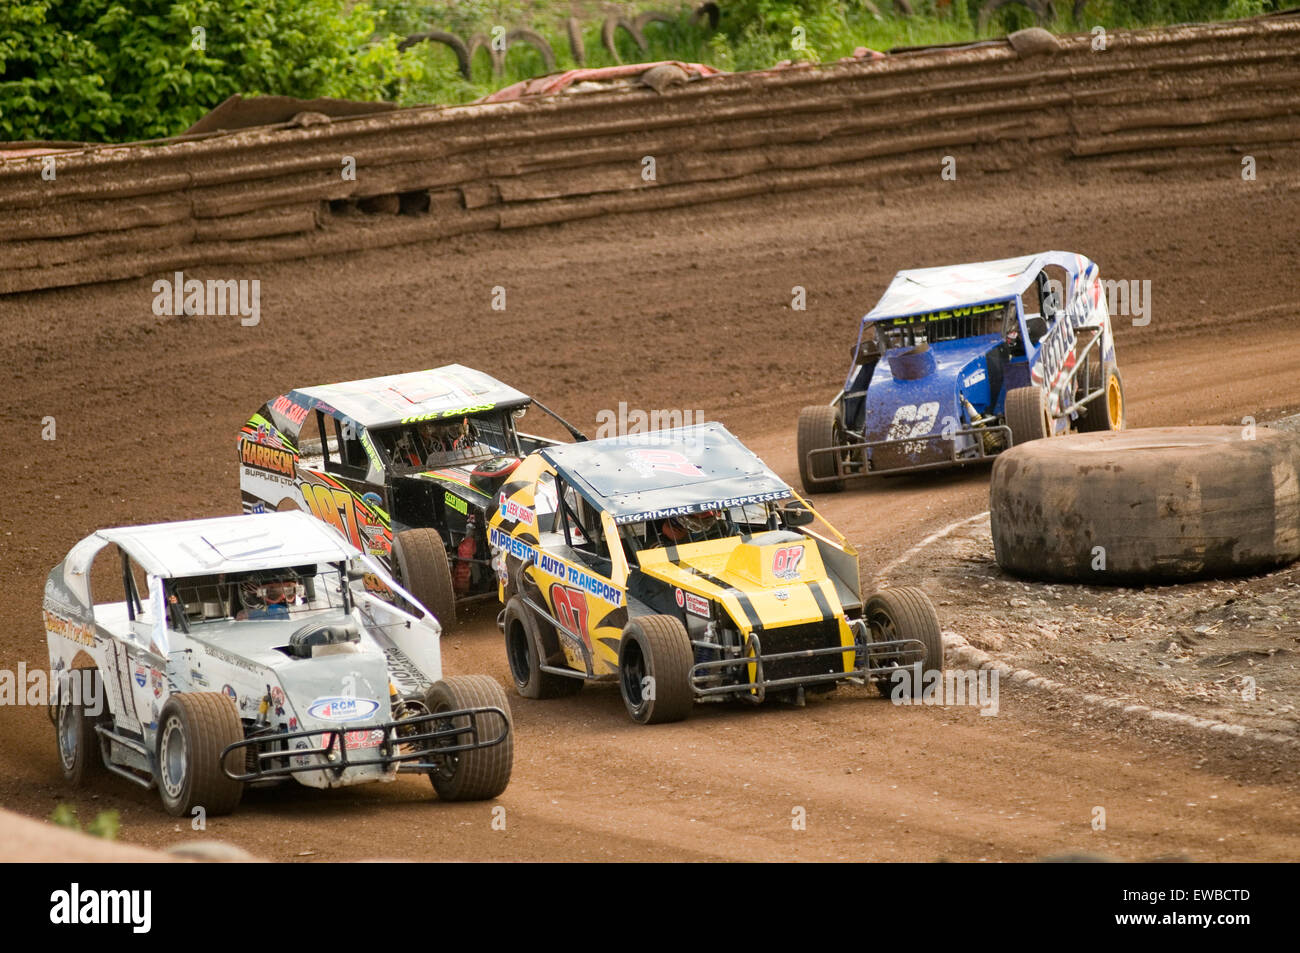 modified stock car cars race racing races dirt oval track tracks ...